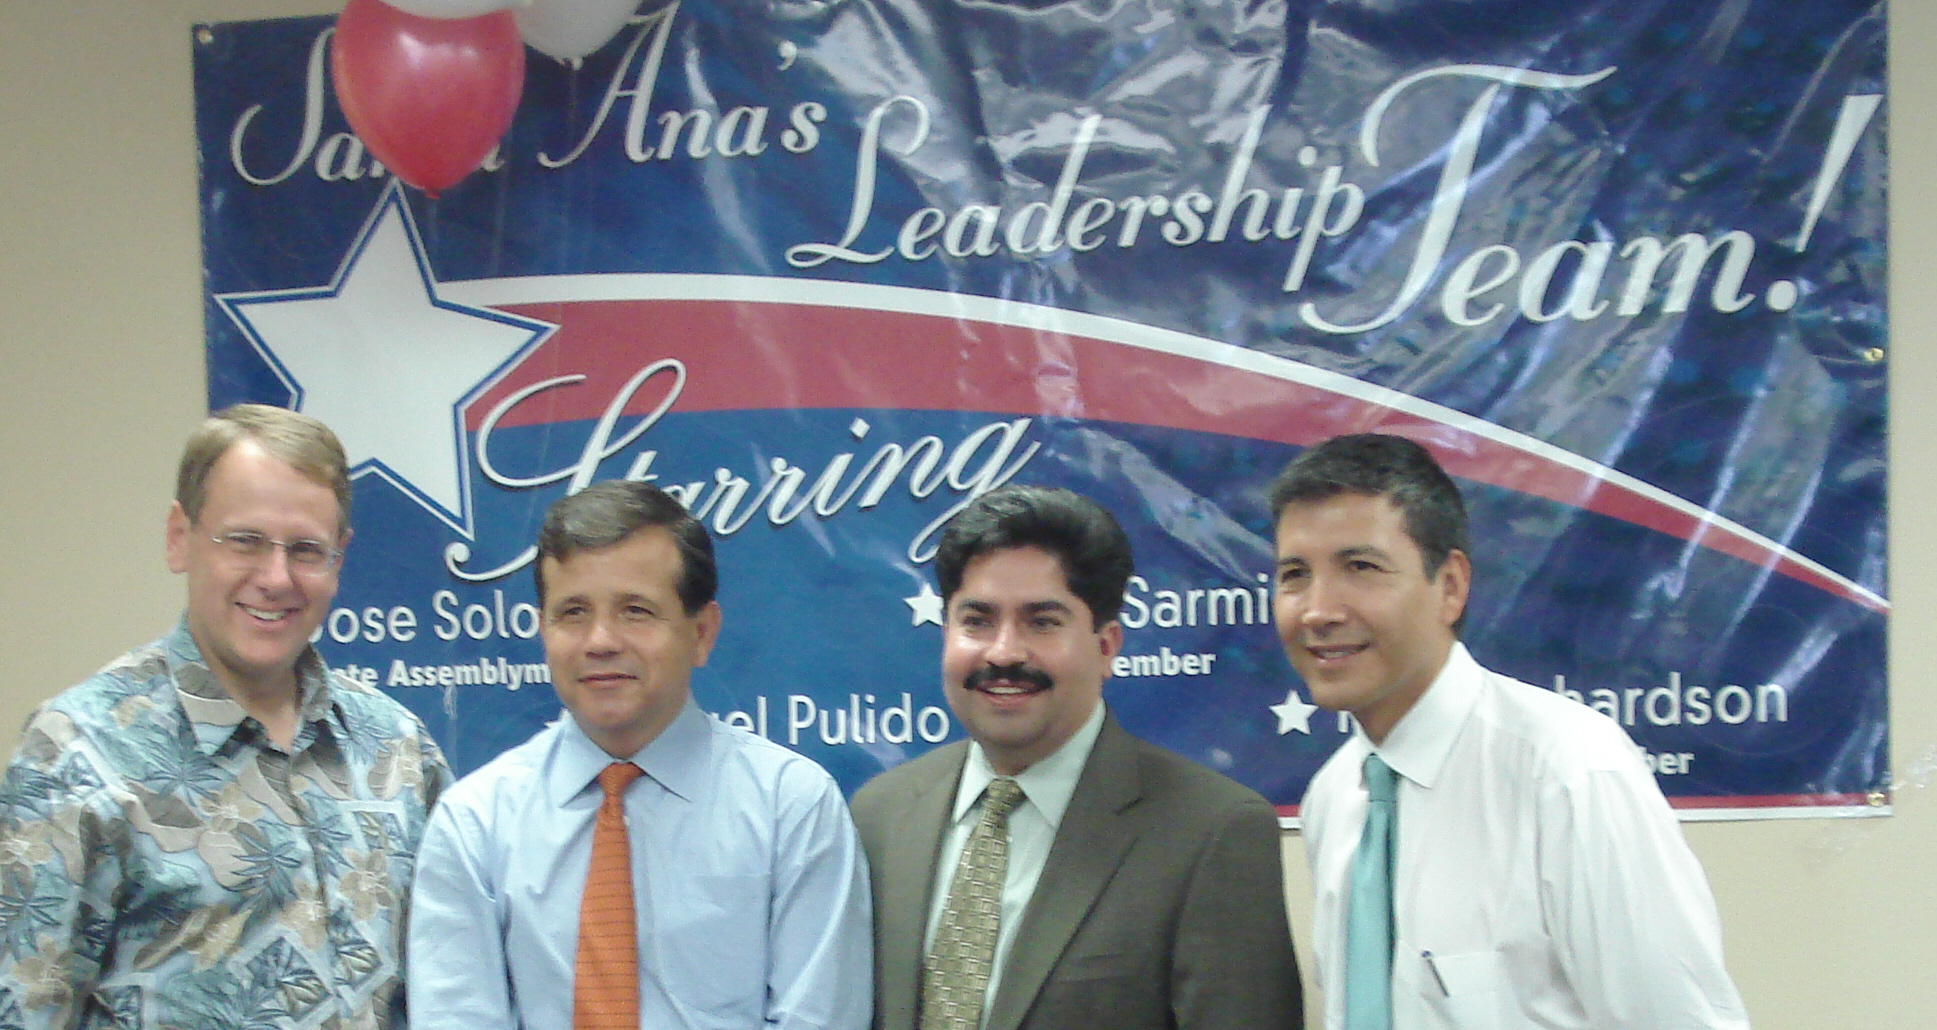 """I dropped by Assemblyman Jose Solorio's new Democratic """"Santa Ana Leadership"""" office on Saturday as they had their grand opening. Solorio was quite gracious. He introduced me to a few […]"""